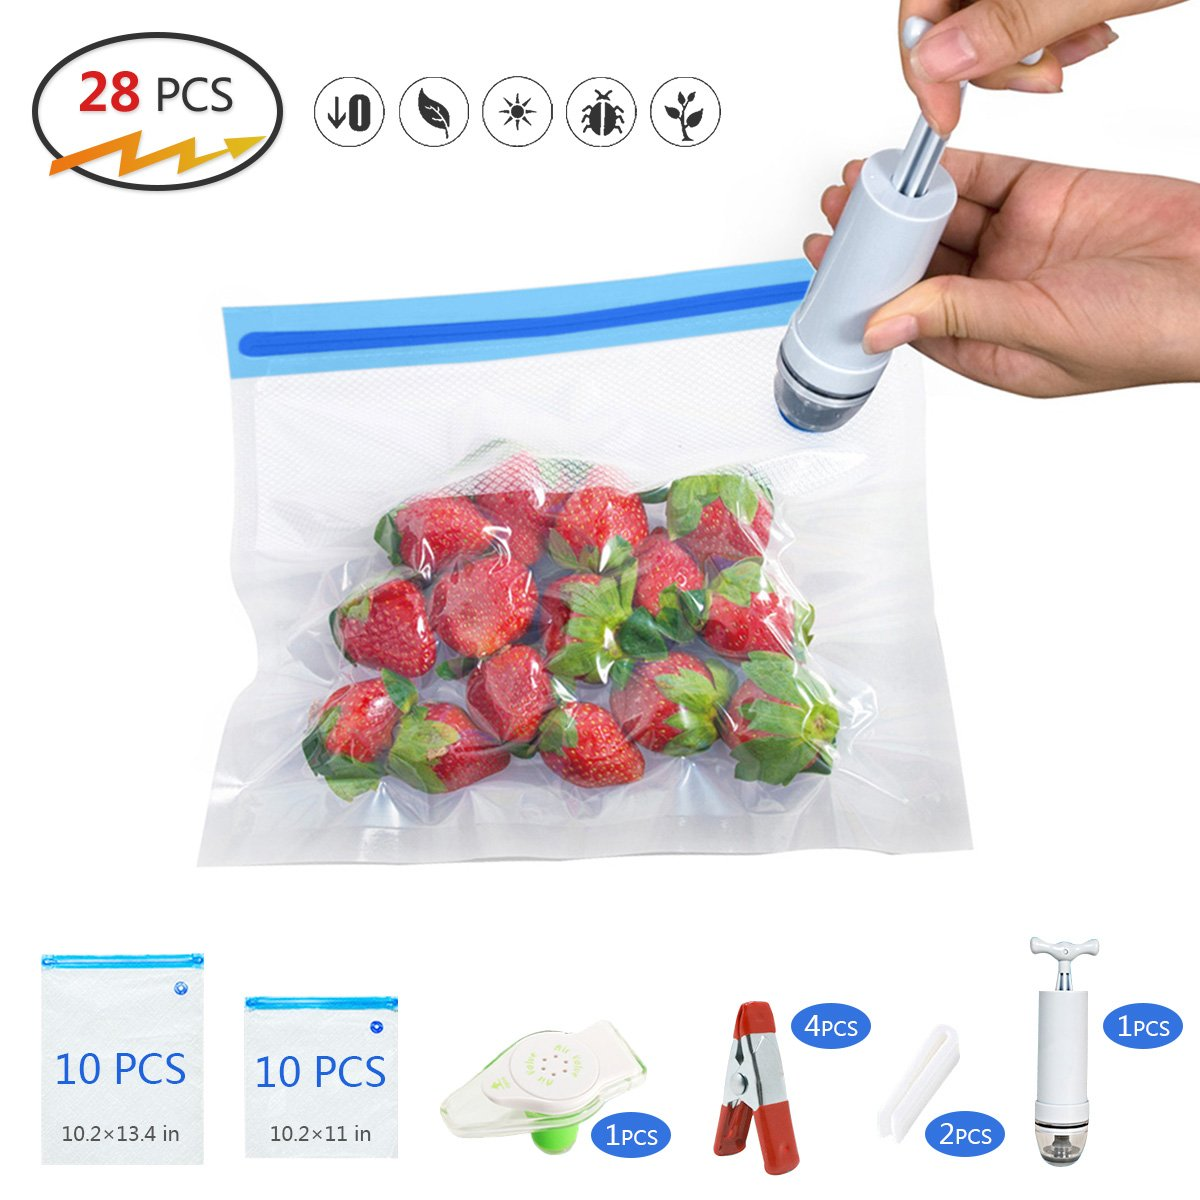 20 Reuseble Food Vacuum Sealed Bags-Sous Vide Bags Kit for Anova Cookers, Sous Vide Cooker Practical for Food Storage and Cooking, 1 Hand Pump, 2 Bag Sealing Clips,1 and 4 Sous Vide Clips, Easy to Use RocDai